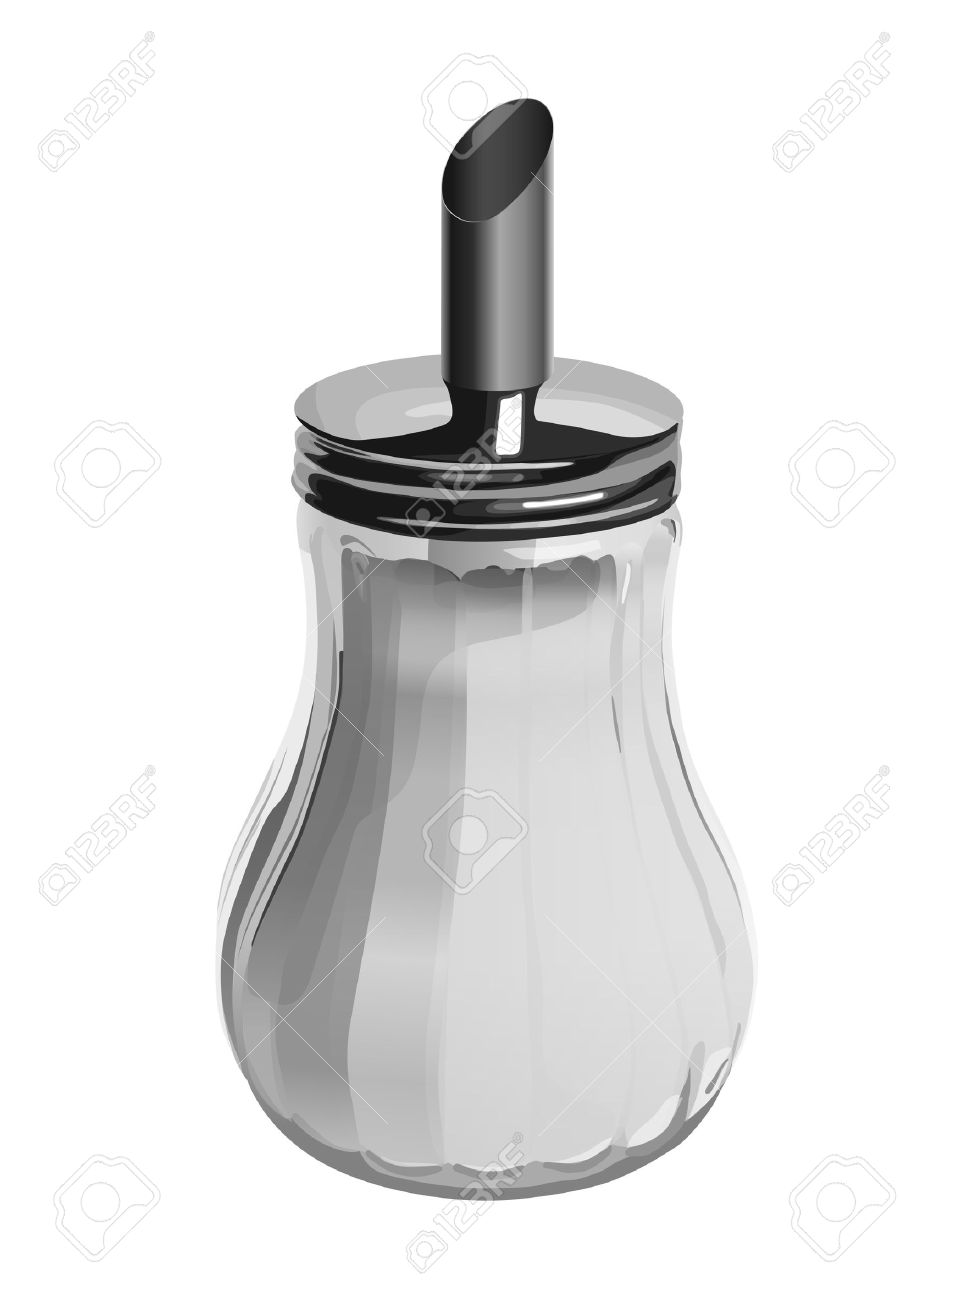 Sugar bowl isolated on a white background - 11950900